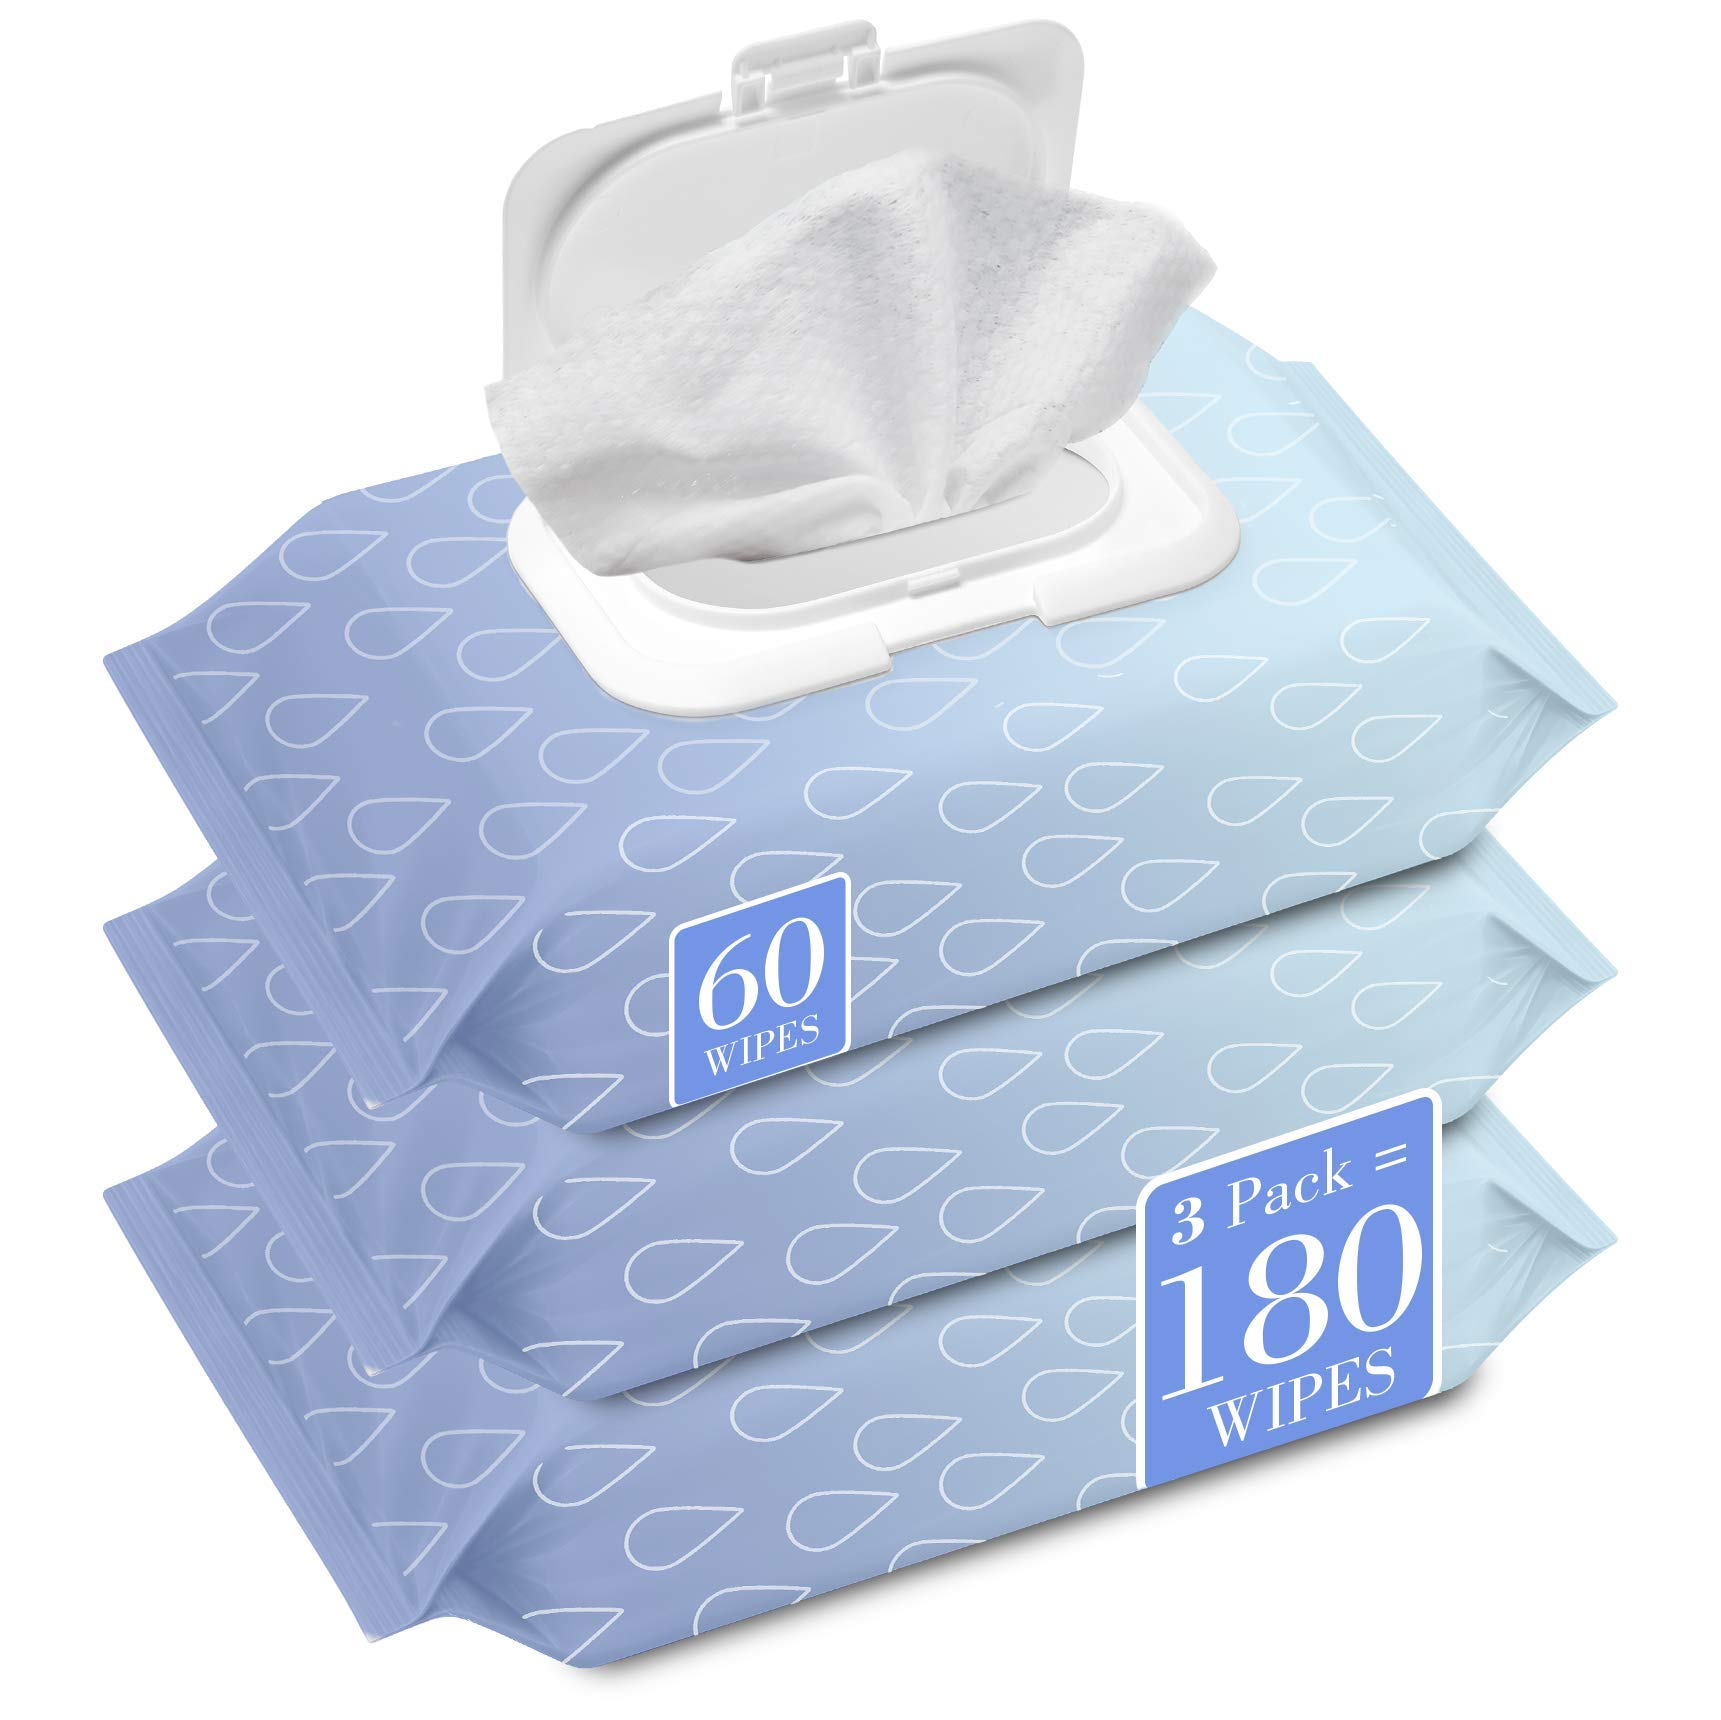 Herb & Luxe Face Wipes, Makeup Remover Facial Cleansing Wipes for Sensitive Skin, 60 Count (Collagen, 3 Pack = 180 Wipes)